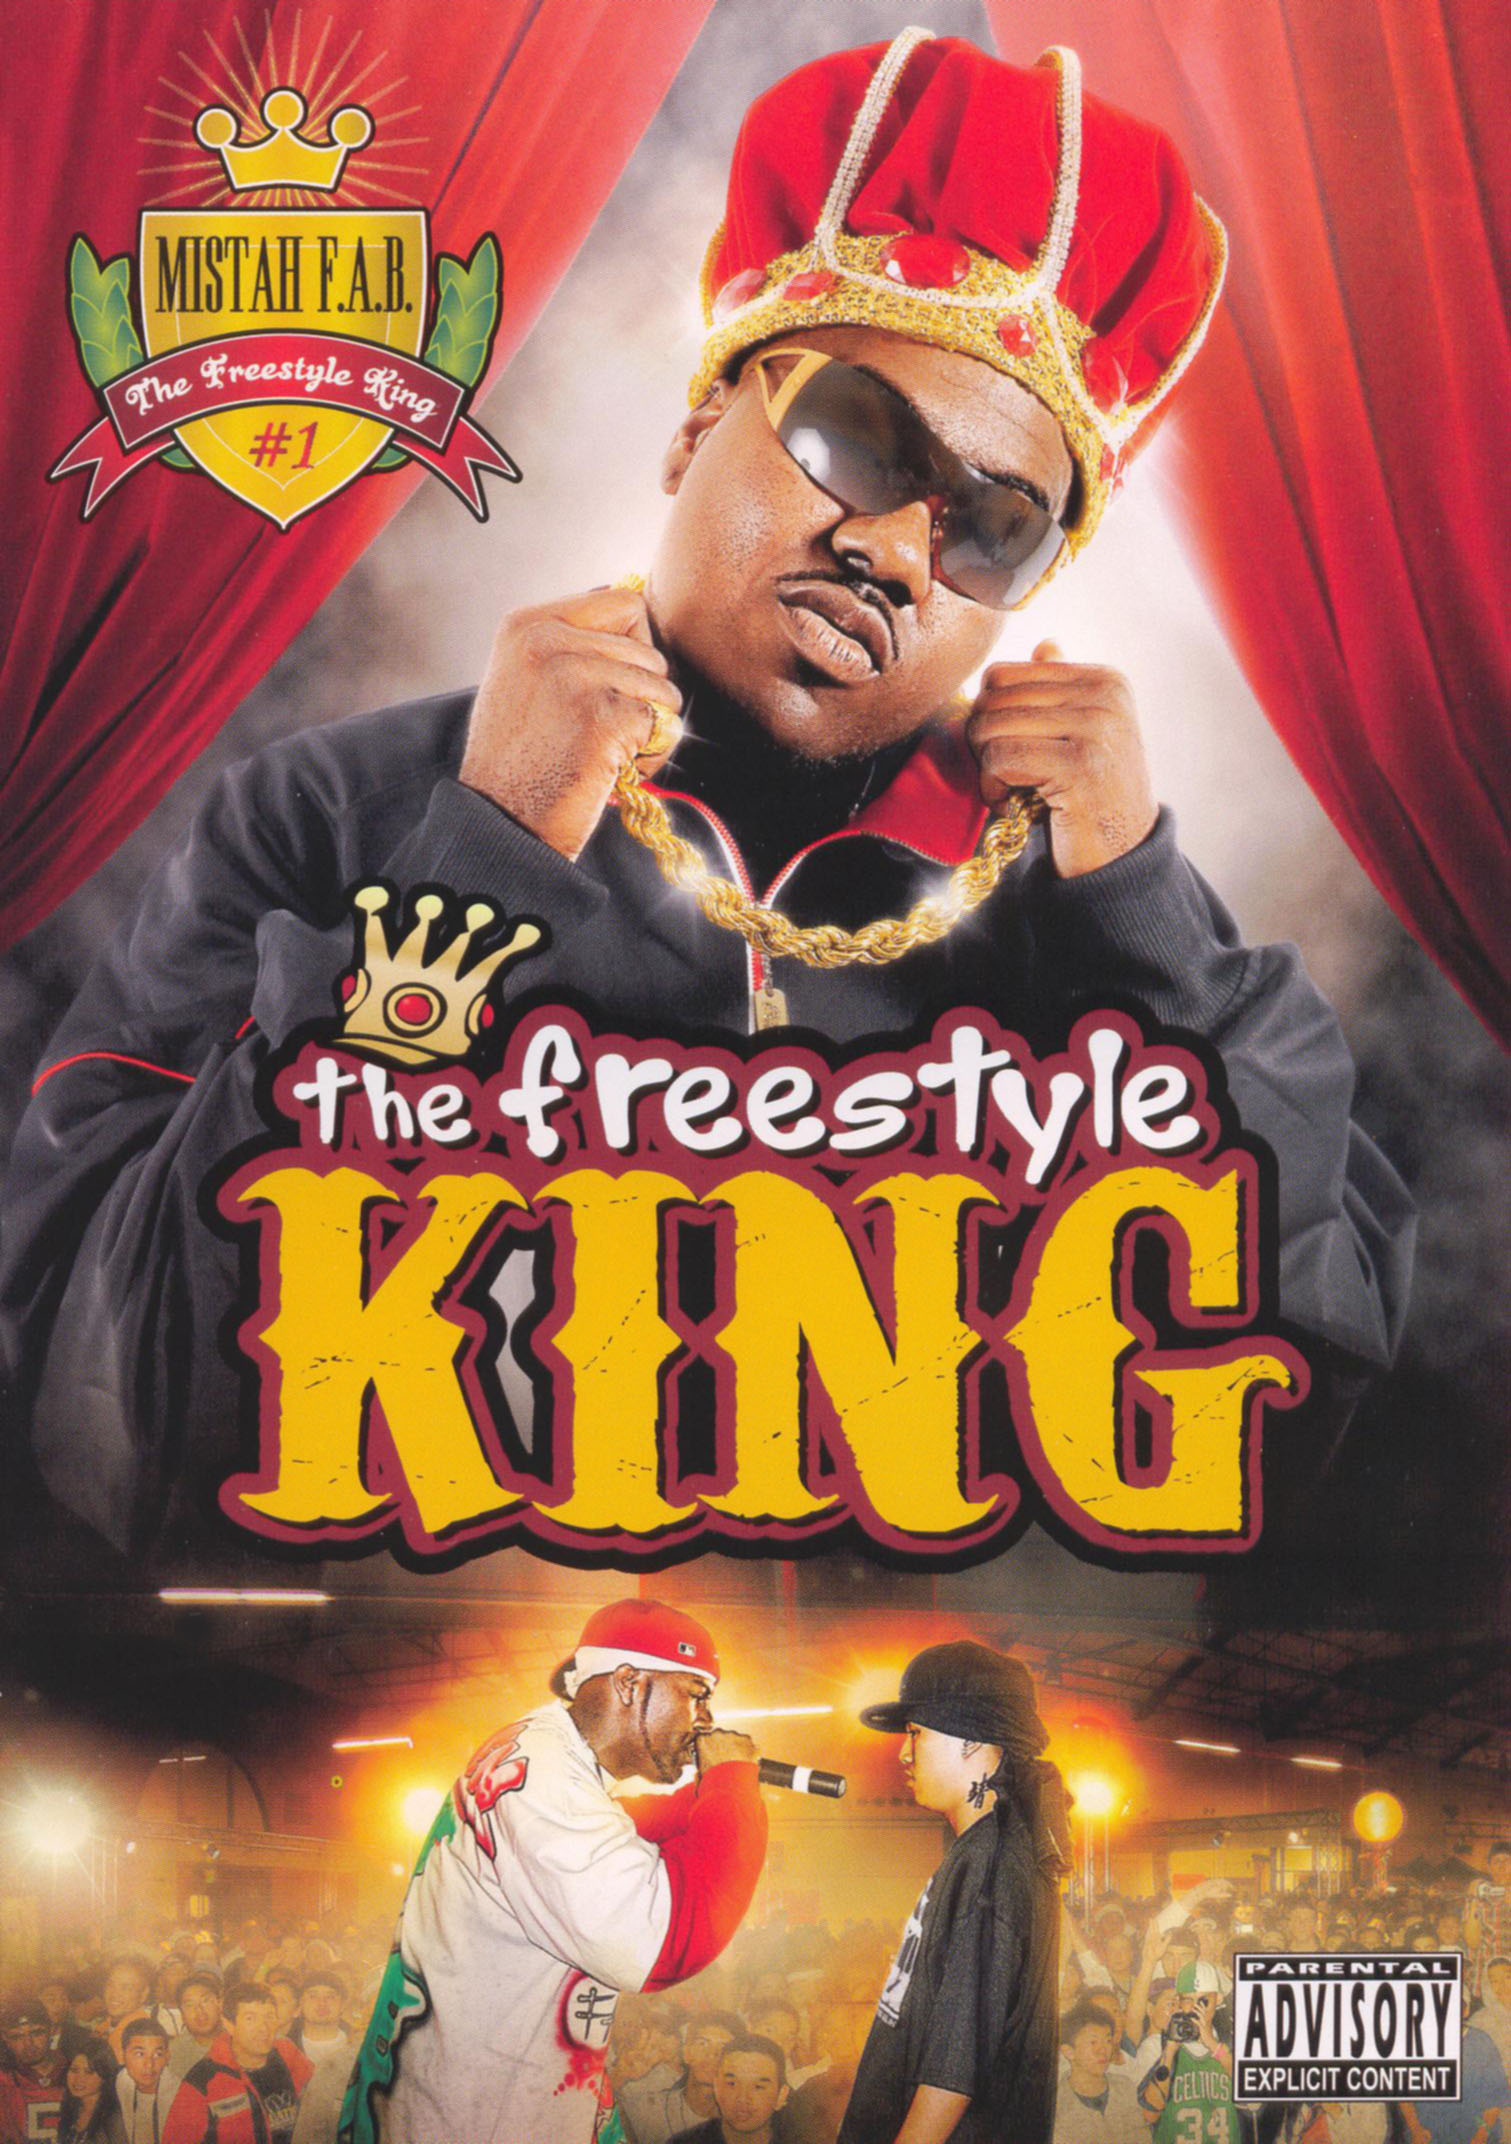 Mistah F.A.B.: The Free Style King